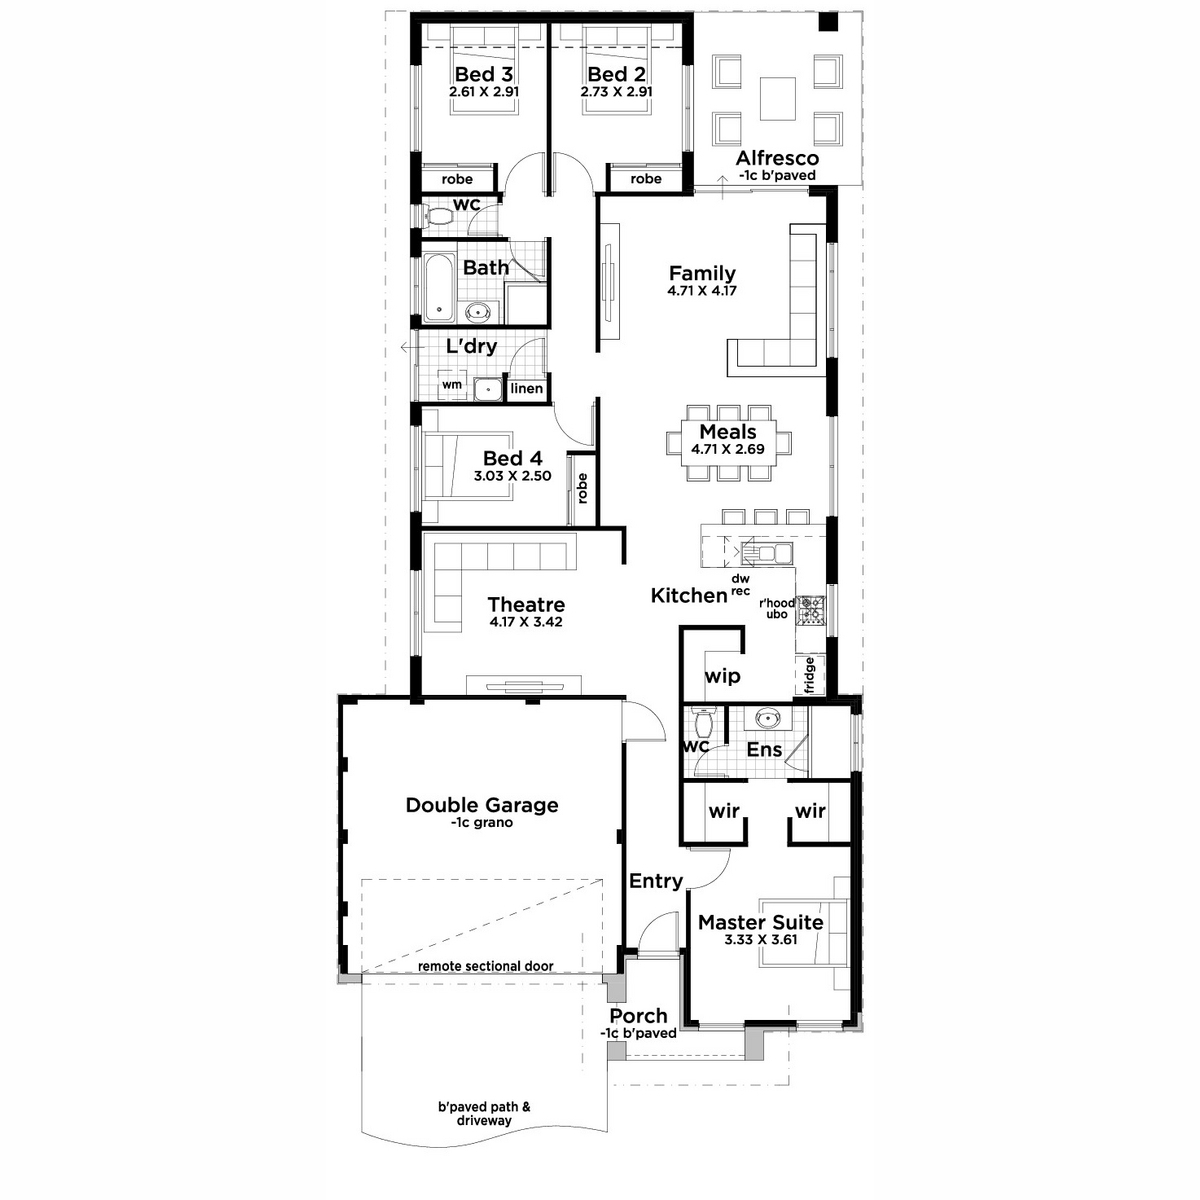 Lot 577 Setosa Drive, Forrestfield - Floorplan - Aussie Living Homes